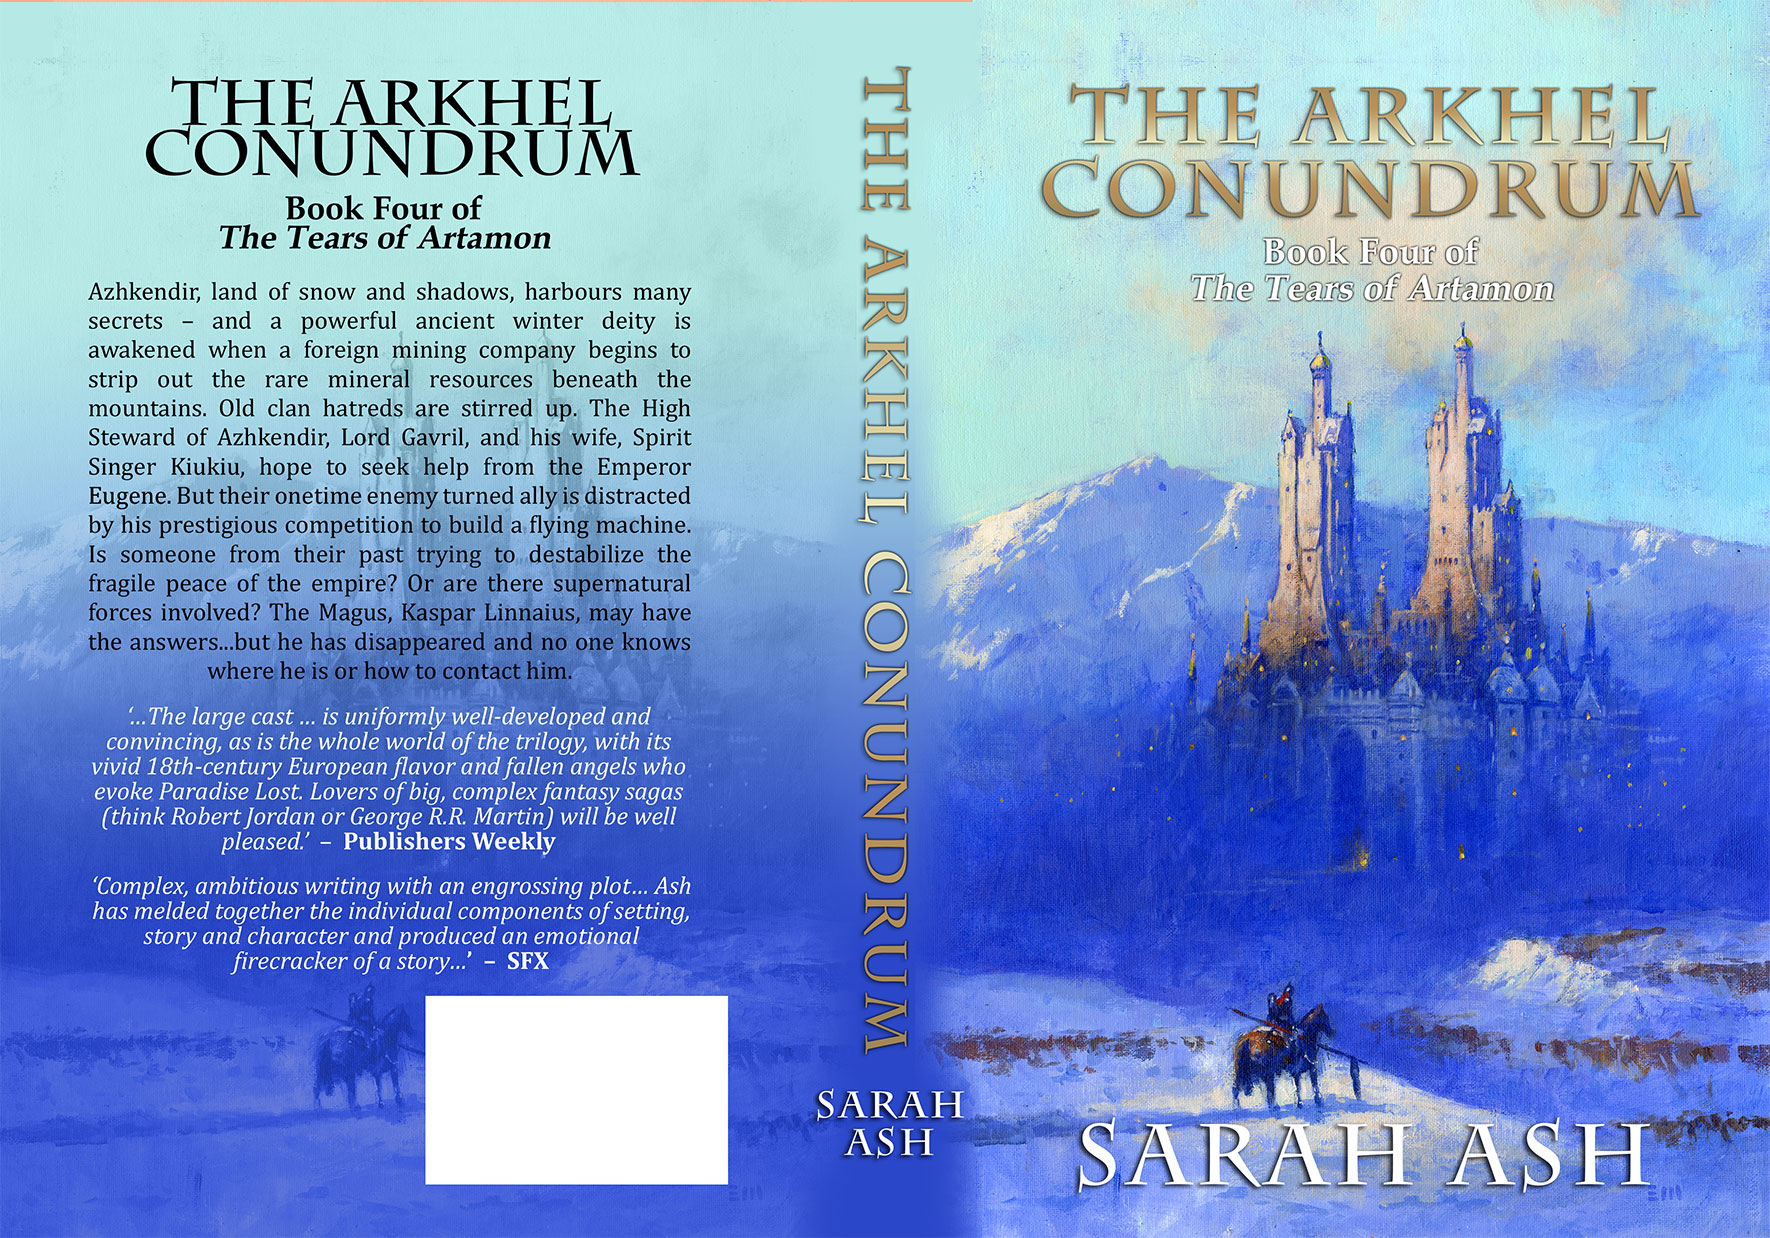 The Arkhel Conundrum by Sarah Ash